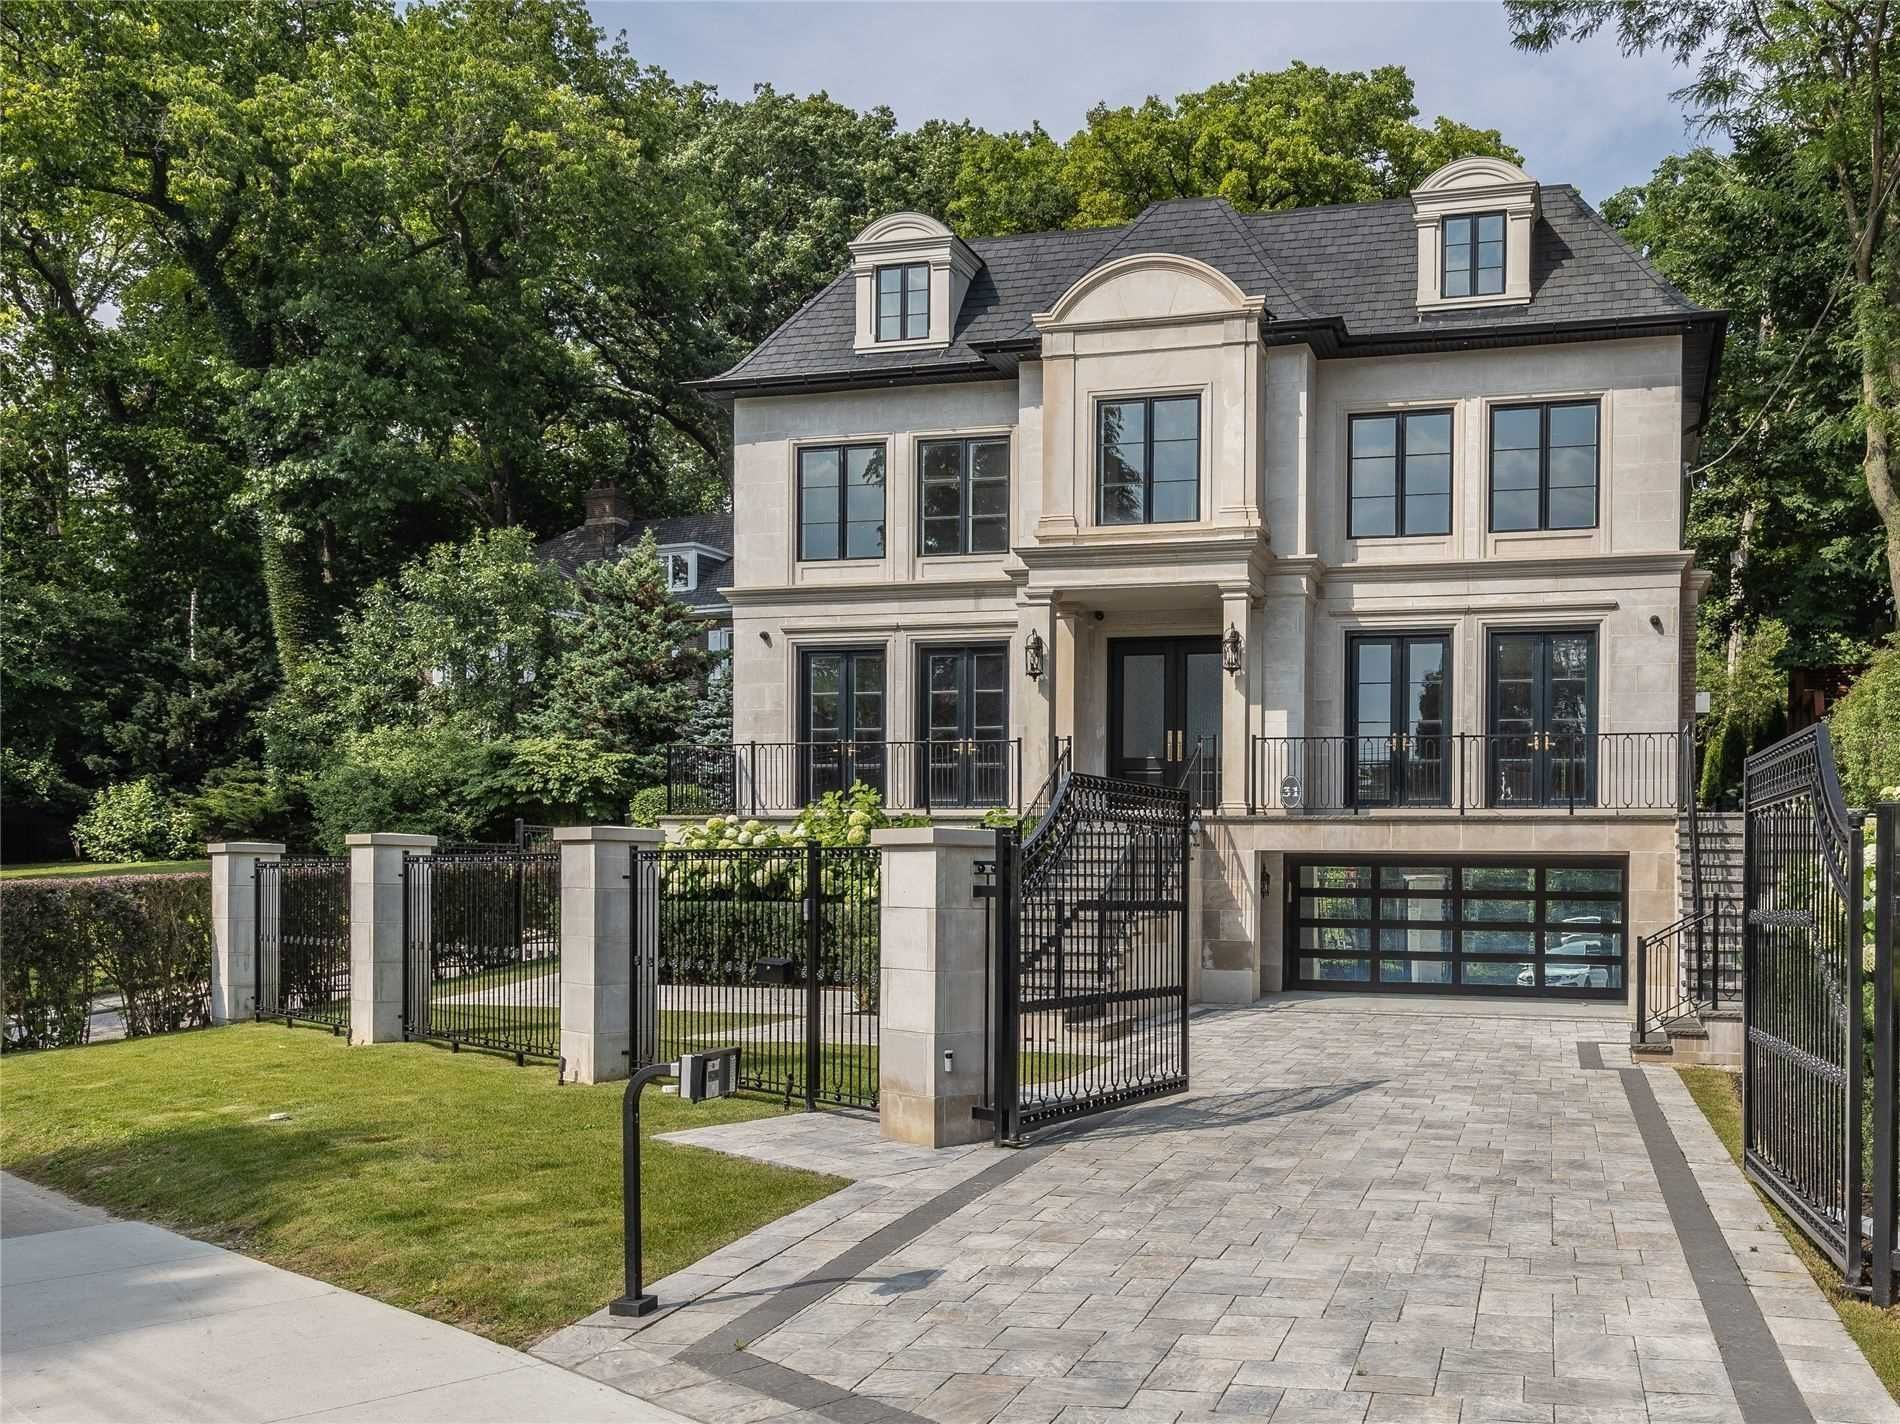 Main Photo: 31 Russell Hill Road in Toronto: Casa Loma House (3-Storey) for sale (Toronto C02)  : MLS®# C5373632